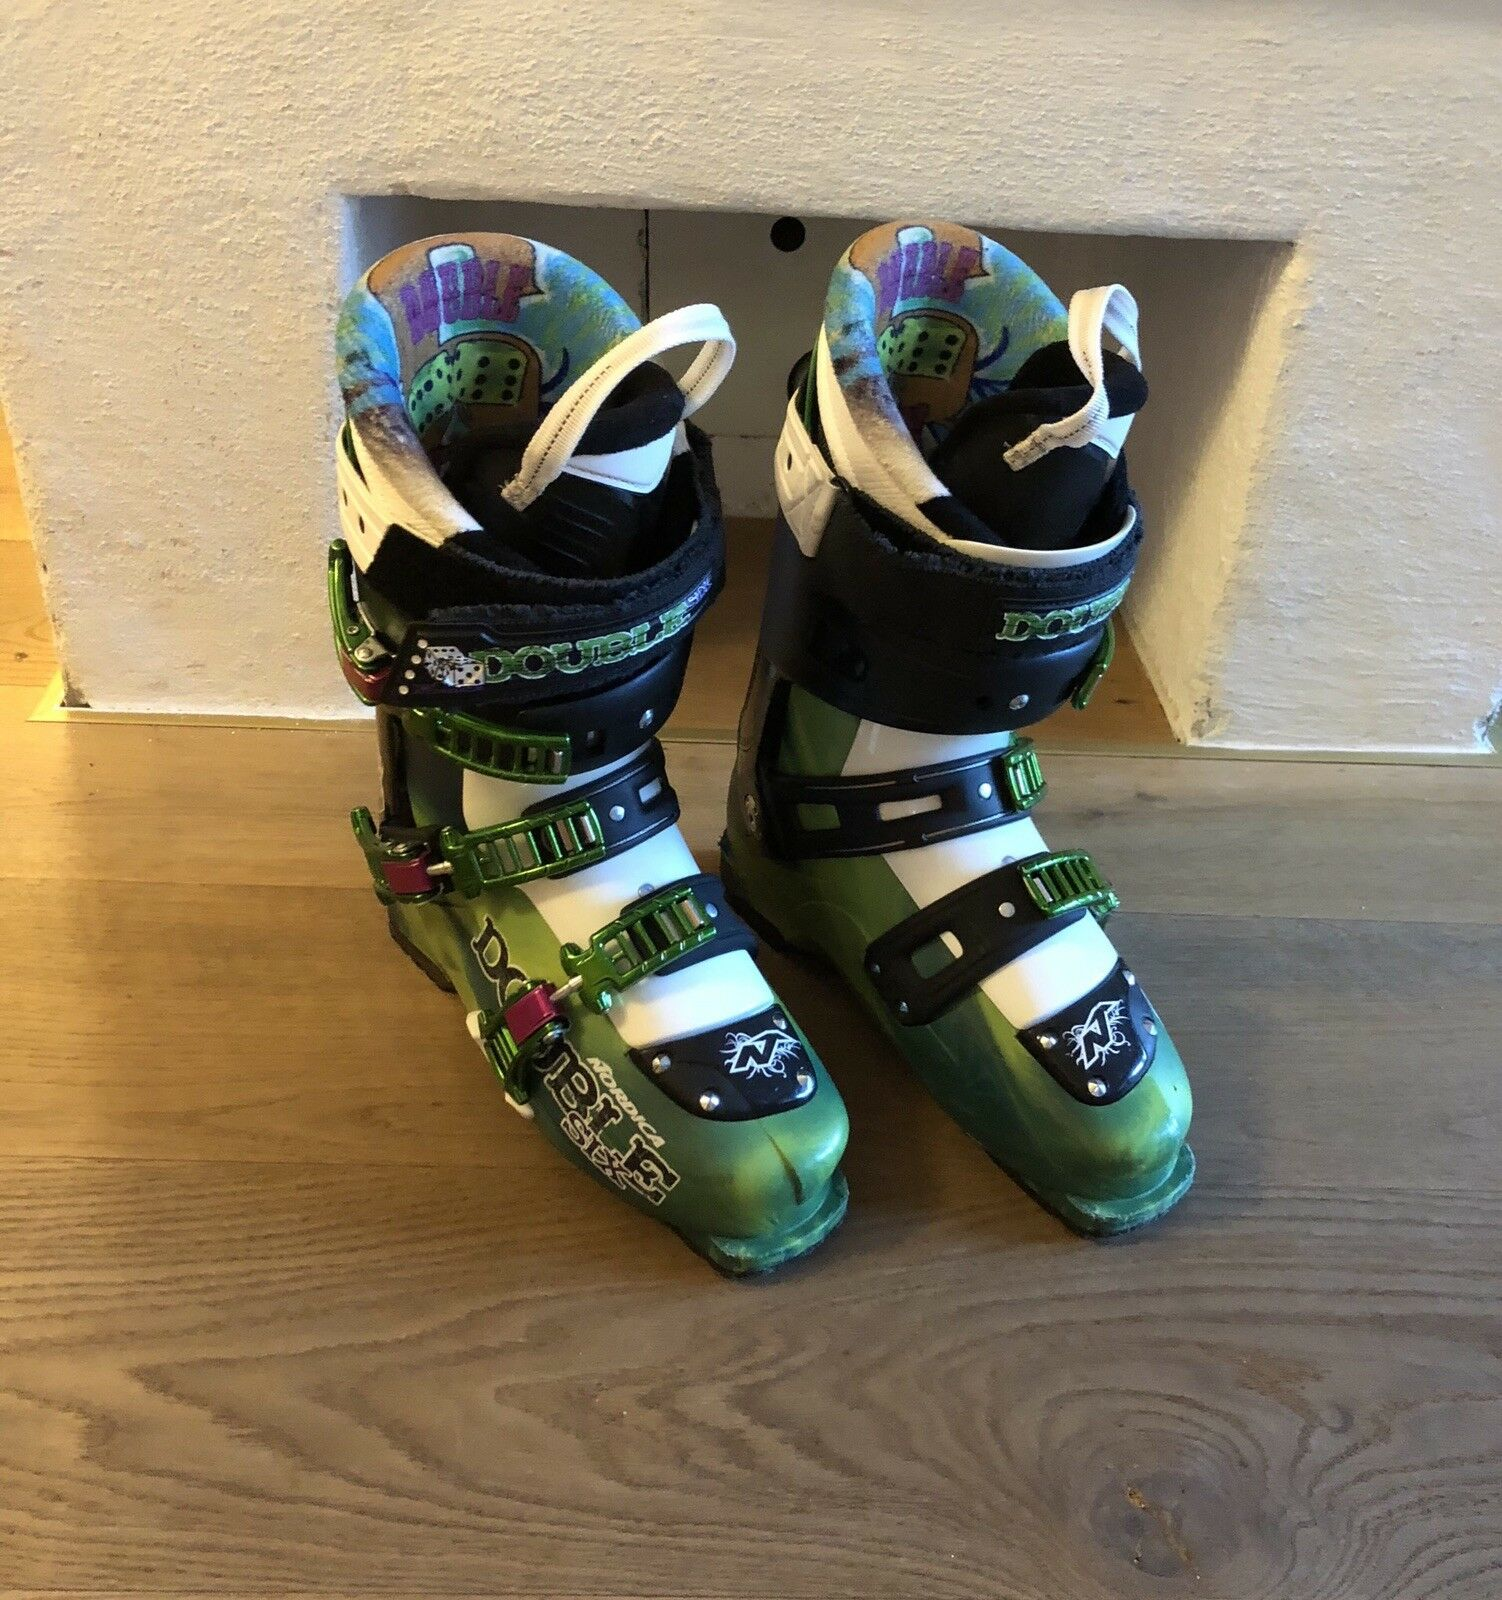 Nordica double Six Skischuhe Gr 42